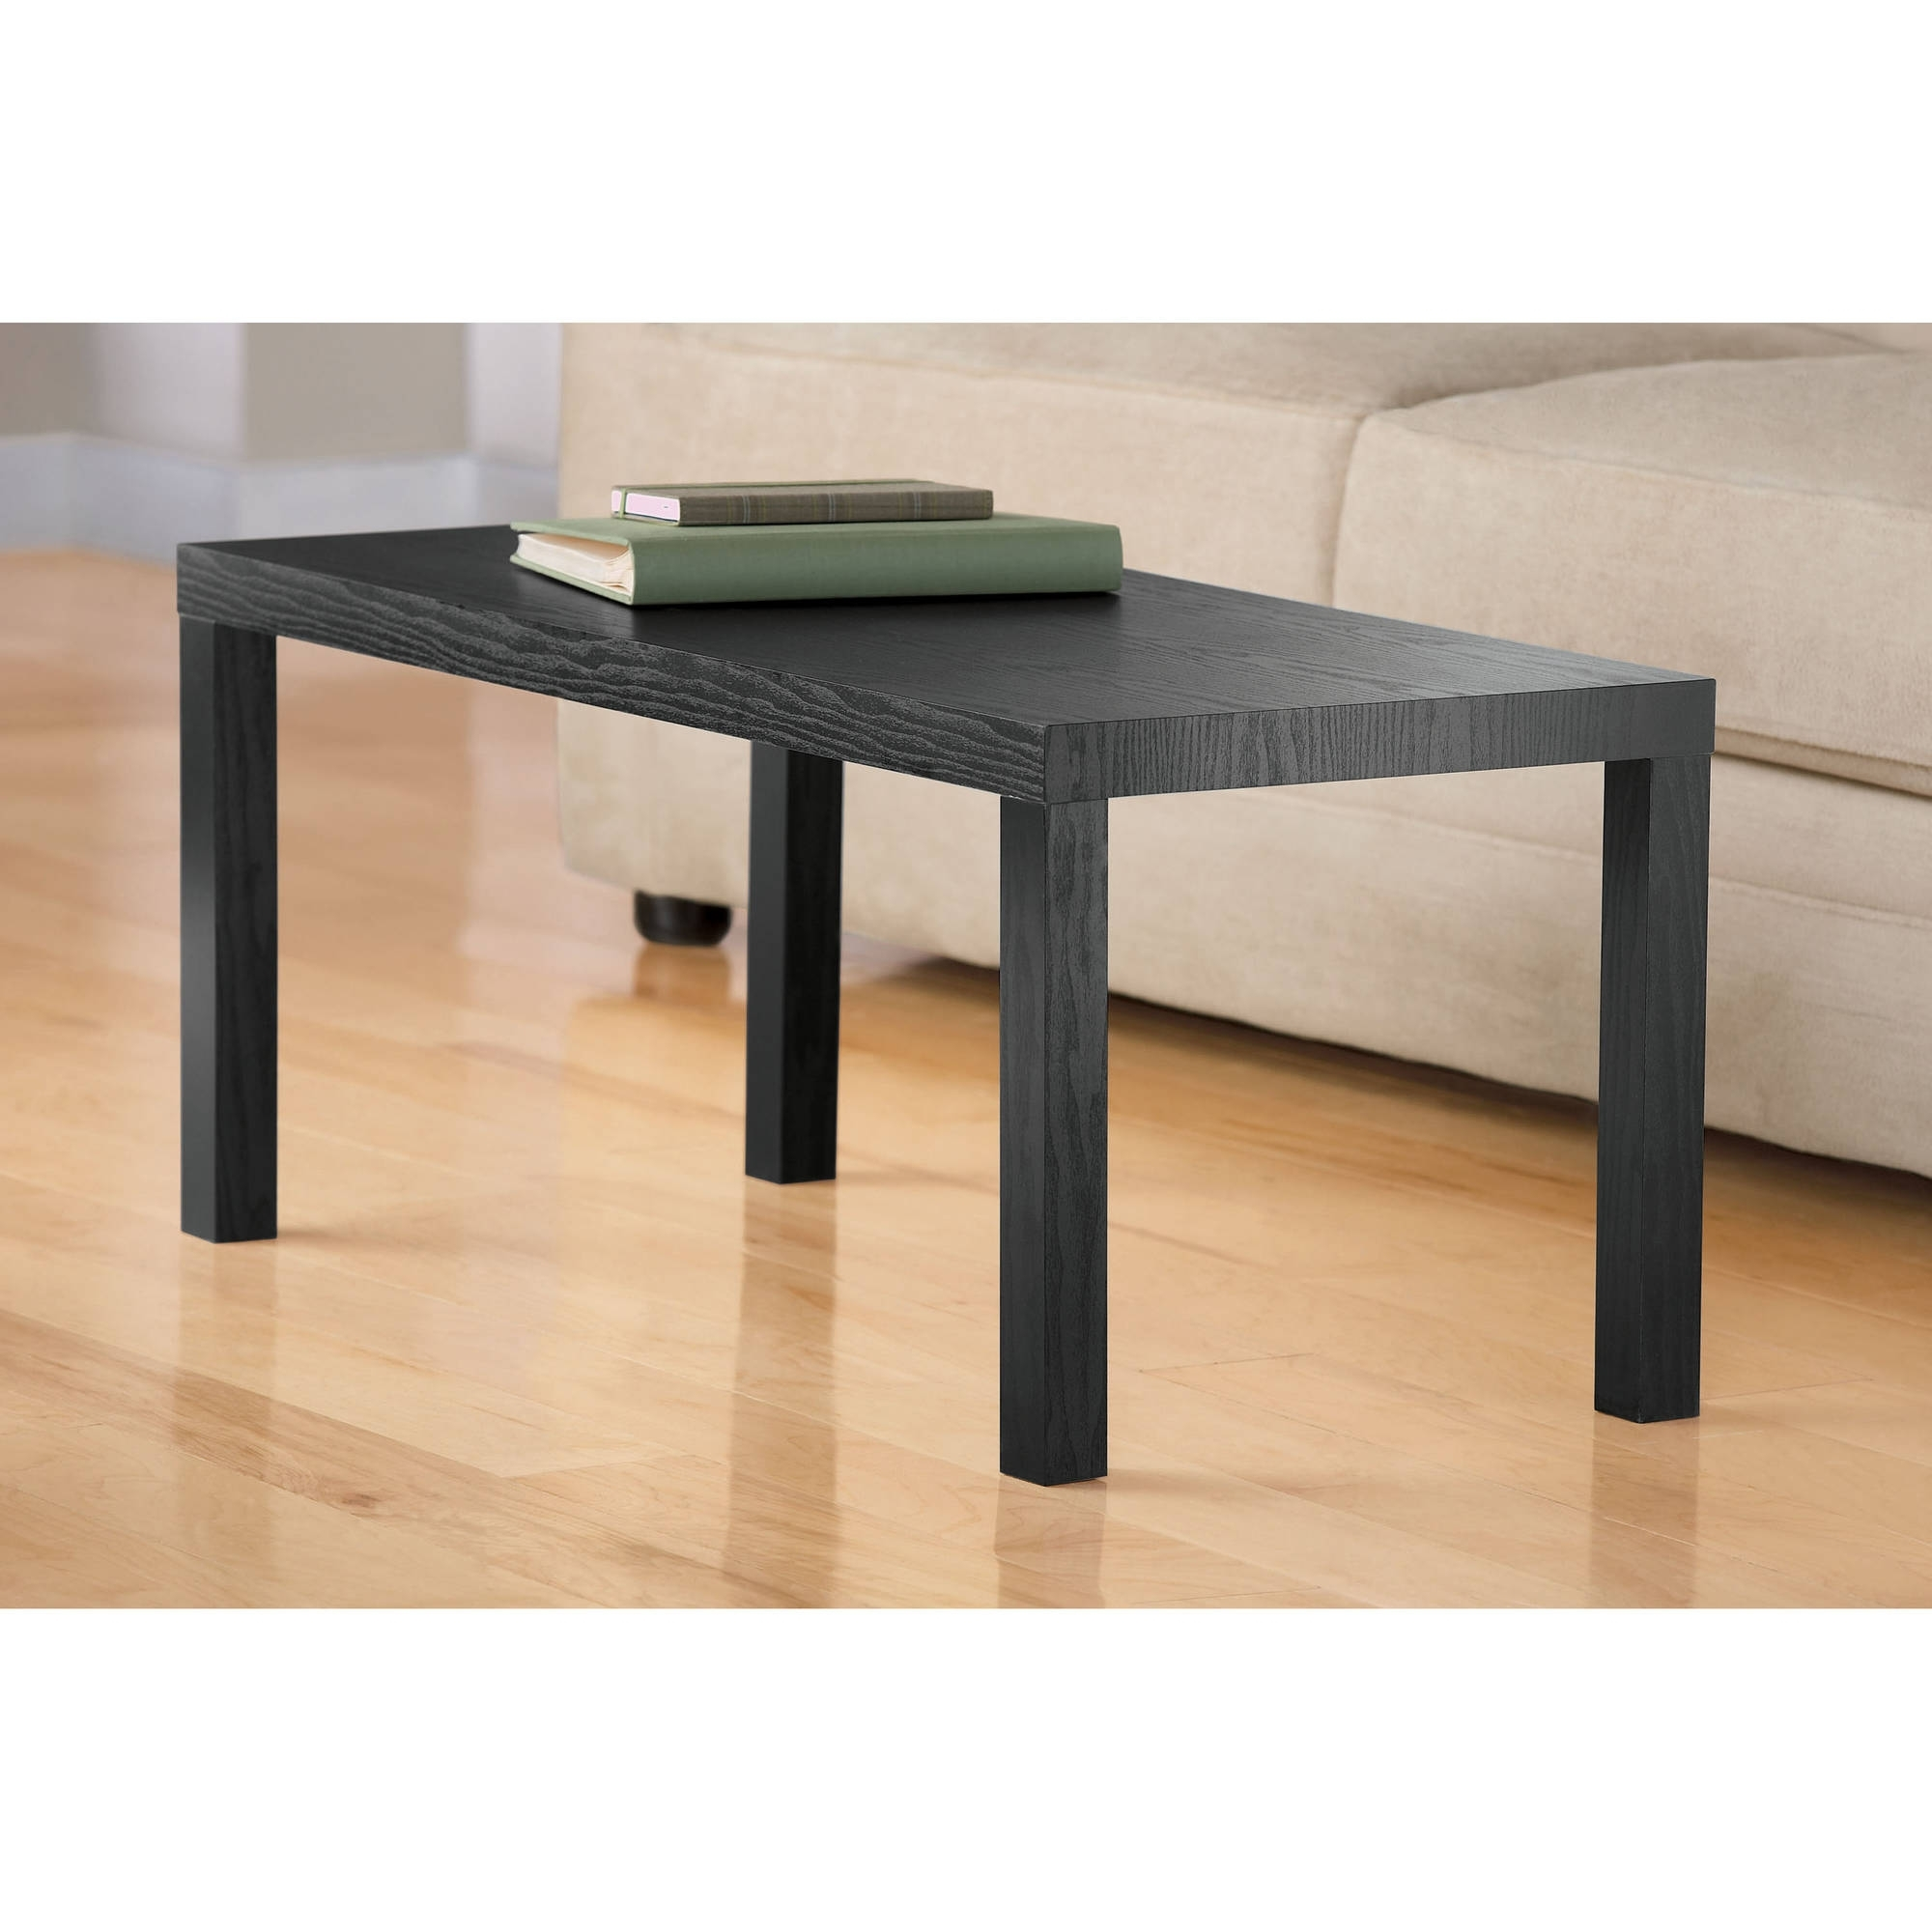 Dhp Parsons Rectangular Coffee Table, Multiple Colors – Walmart Throughout Preferred Kai Small Coffee Tables (View 6 of 20)